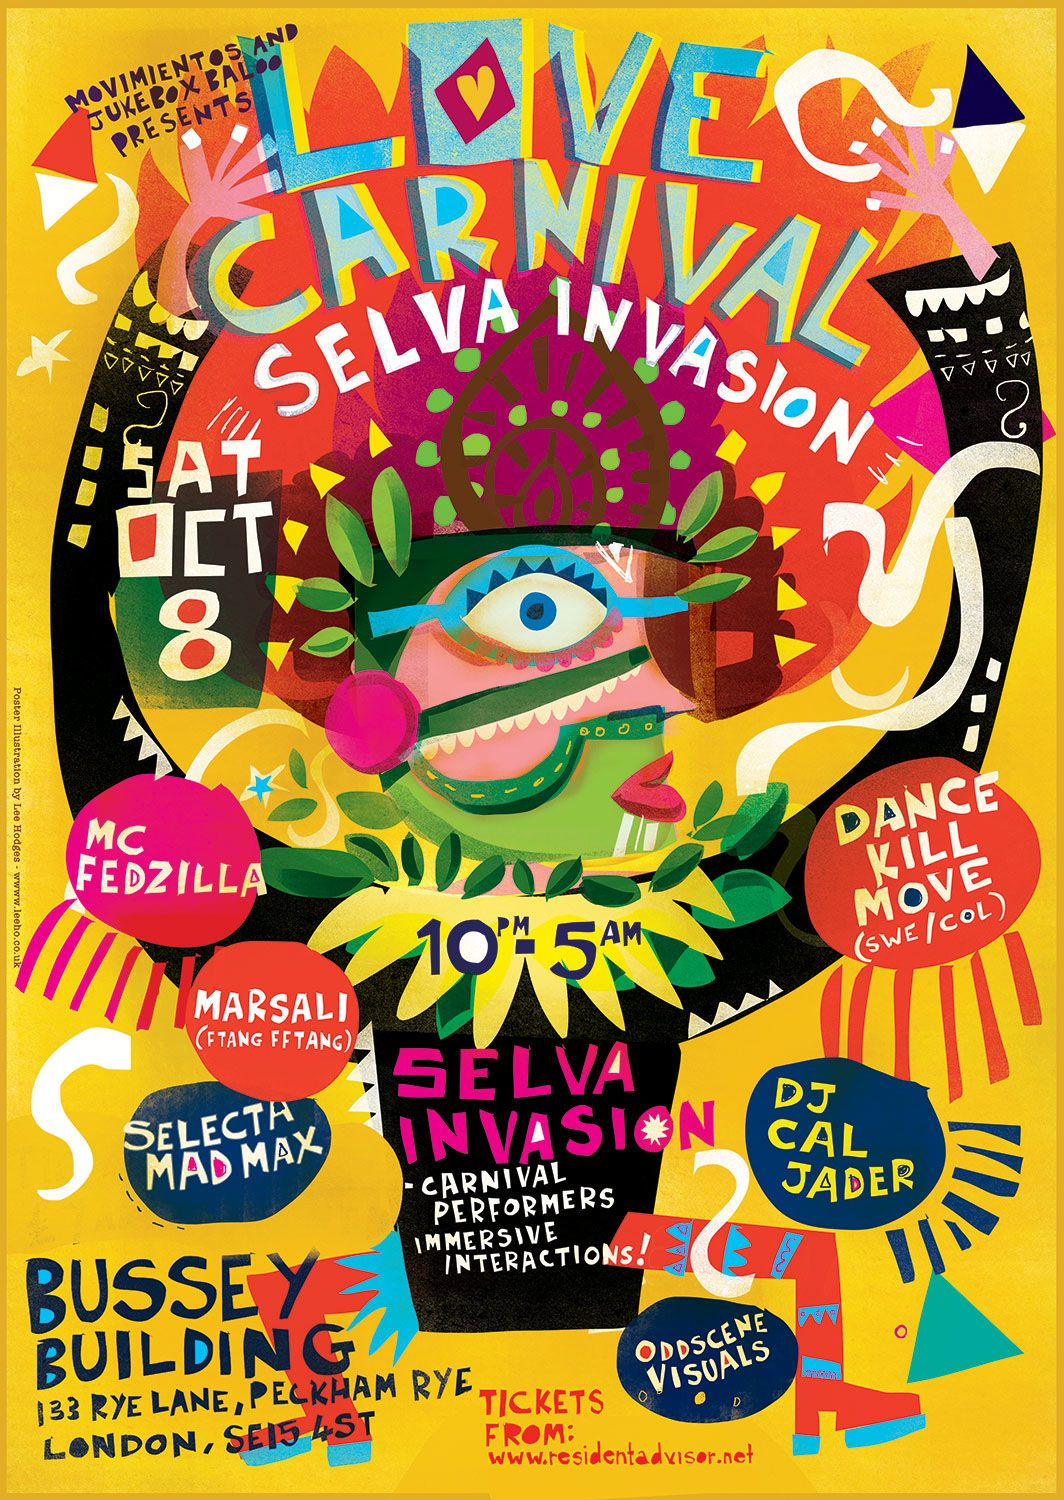 Love Carnival Posters on Behance | Posters | Carnival ...